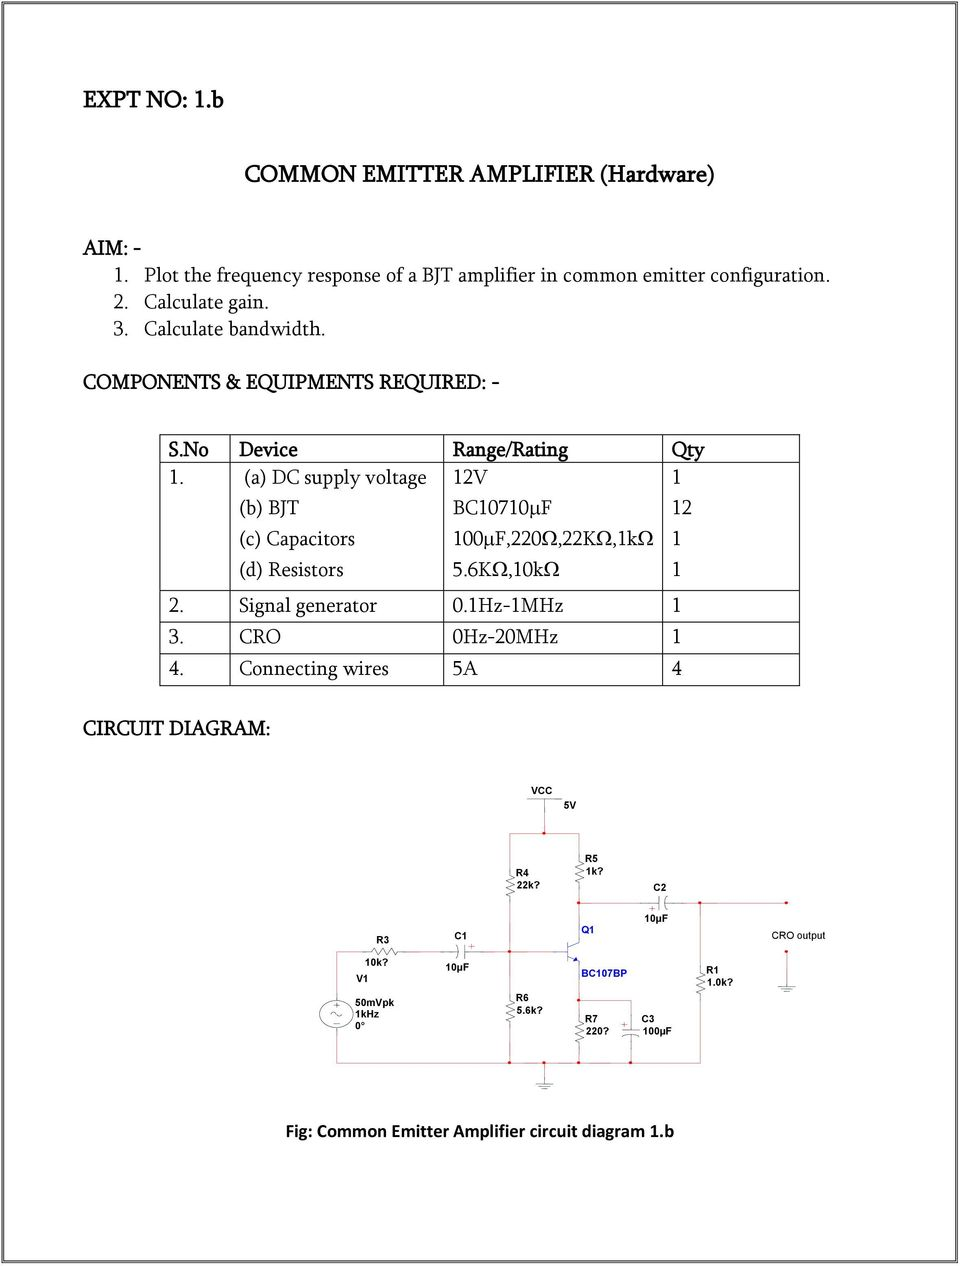 Electronics Circuit Analysis Pdf Rc Coupled Amplifier Frequency Response A Dc Supply Voltage B Bjt C Capacitors D